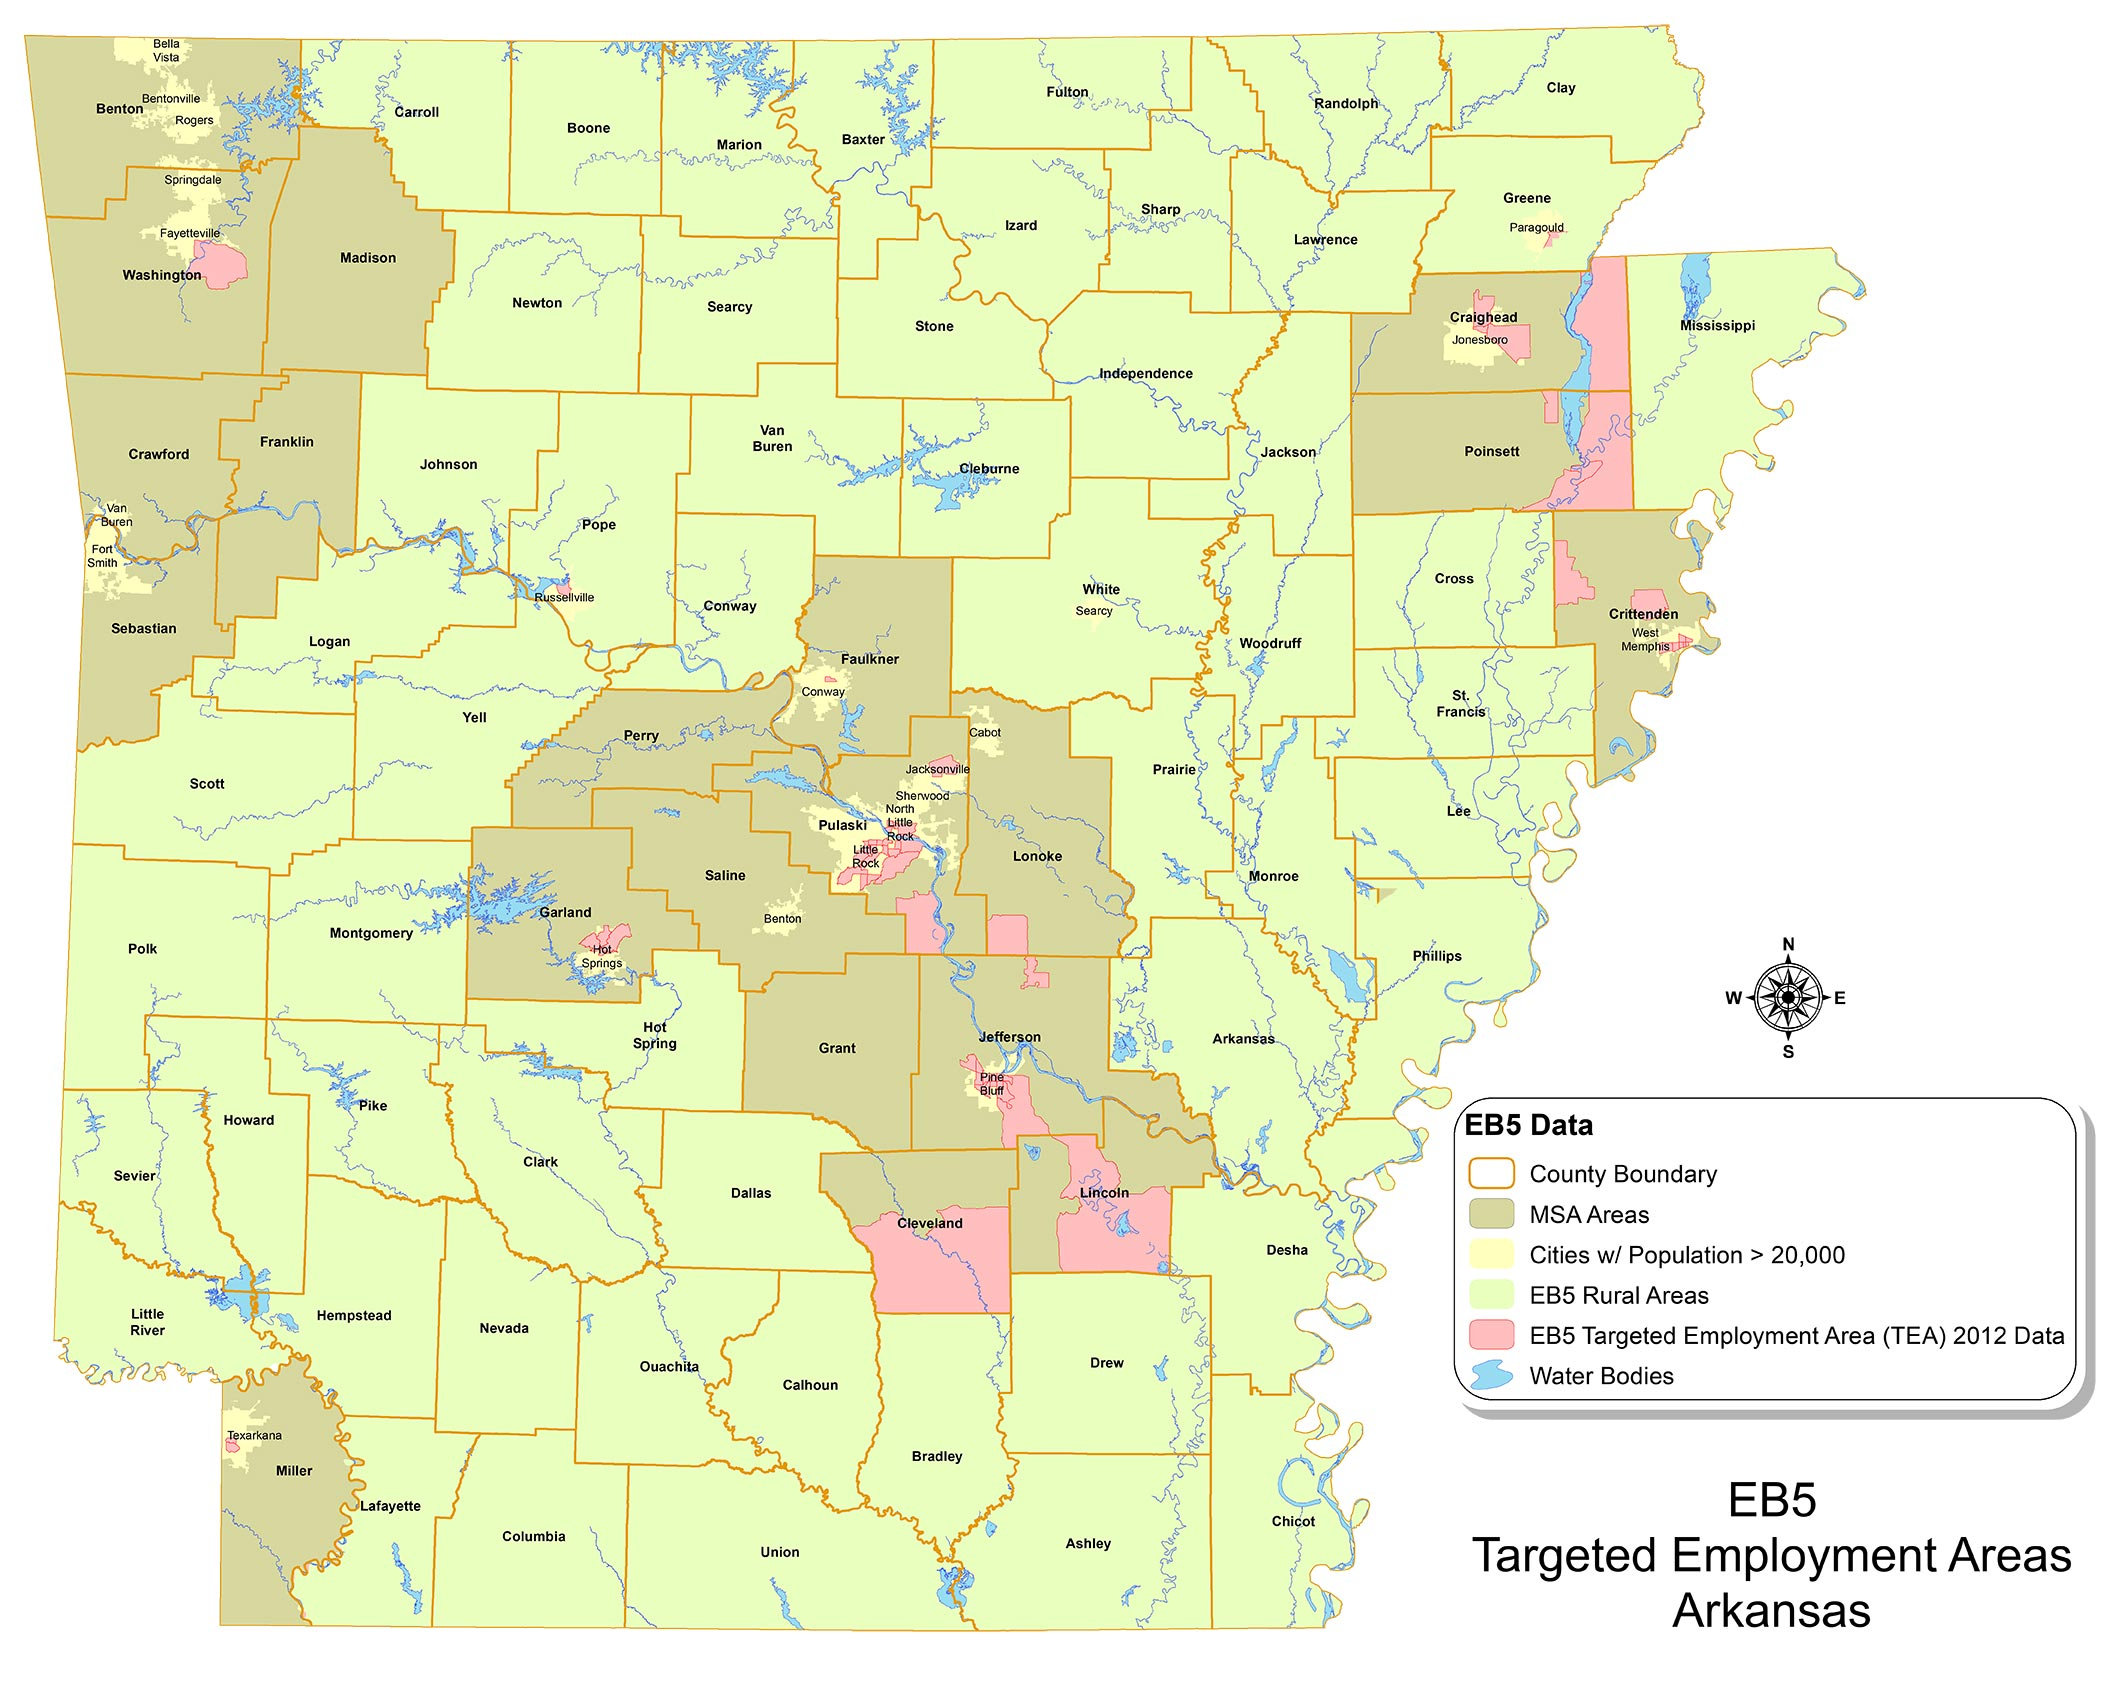 Targeted Employment Areas for the State of Arkansas